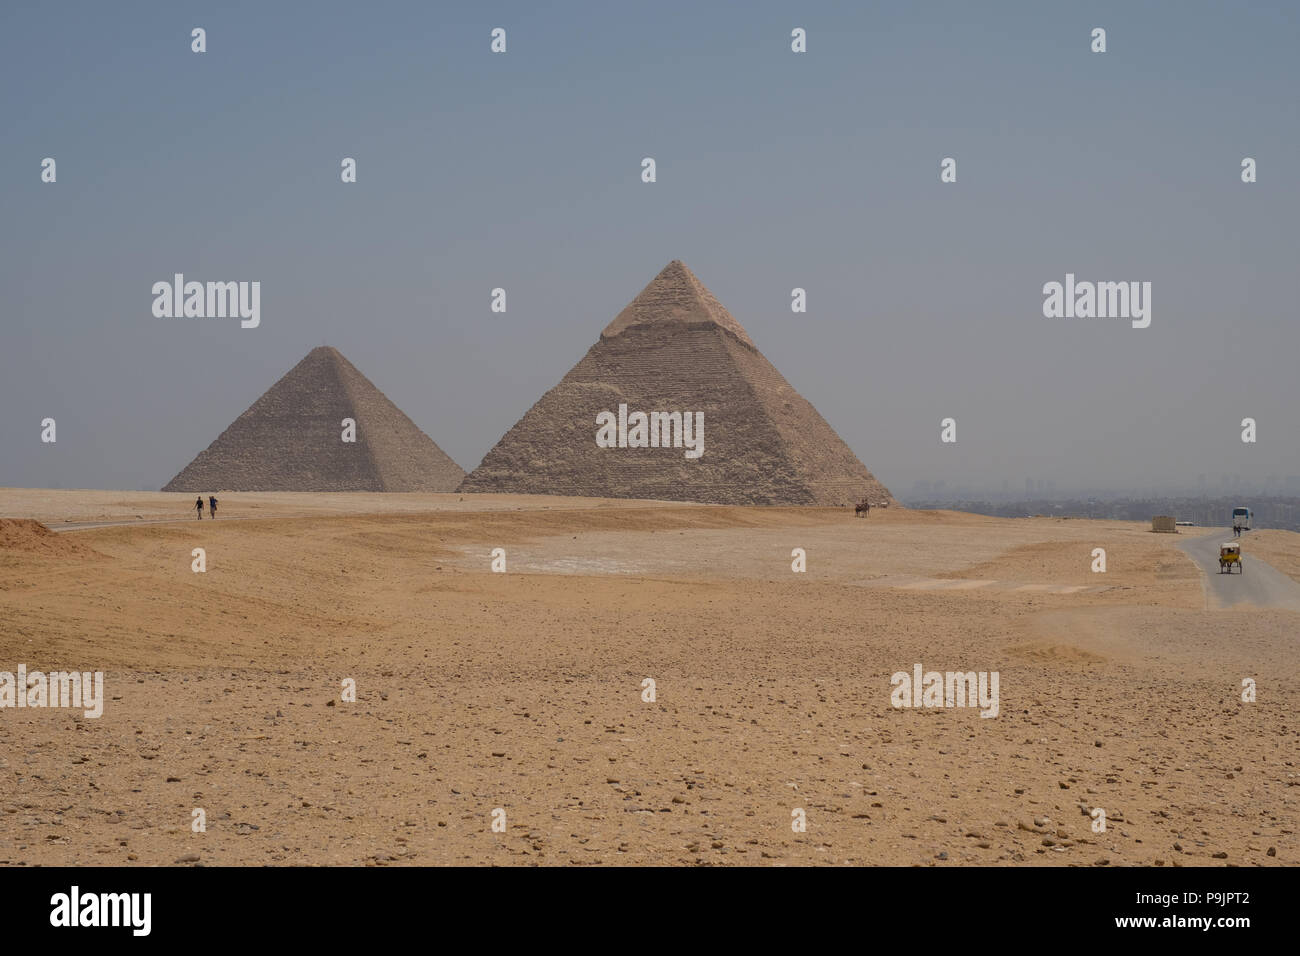 View of the pyramids of Giza, Egypt - Stock Image